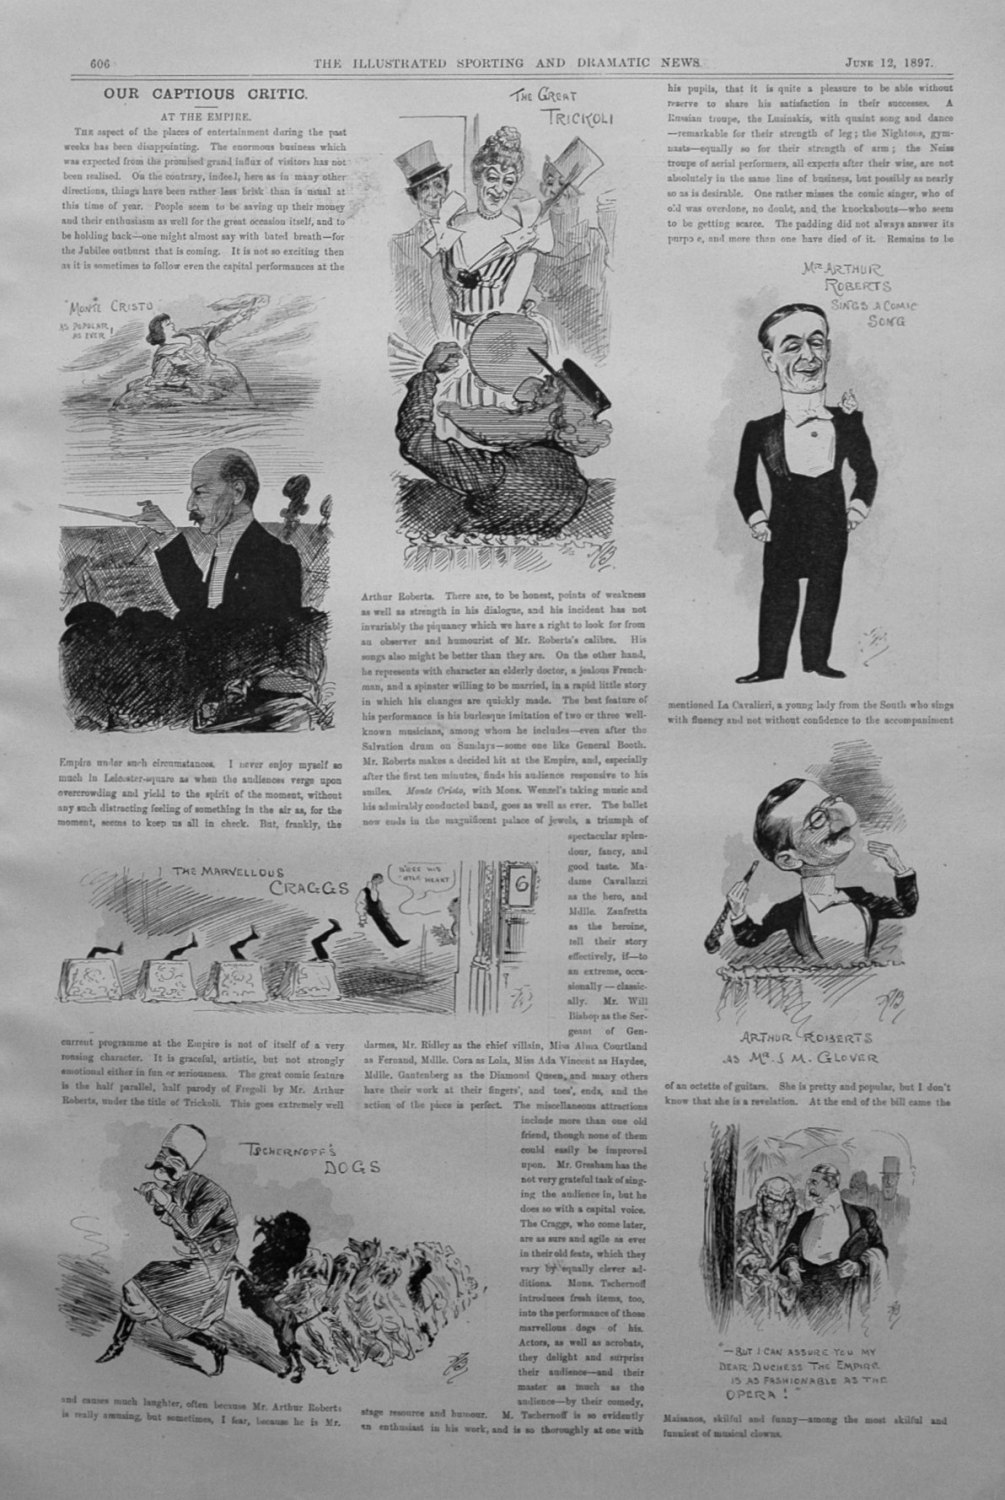 Our Captious Critic, June 12th 1897.